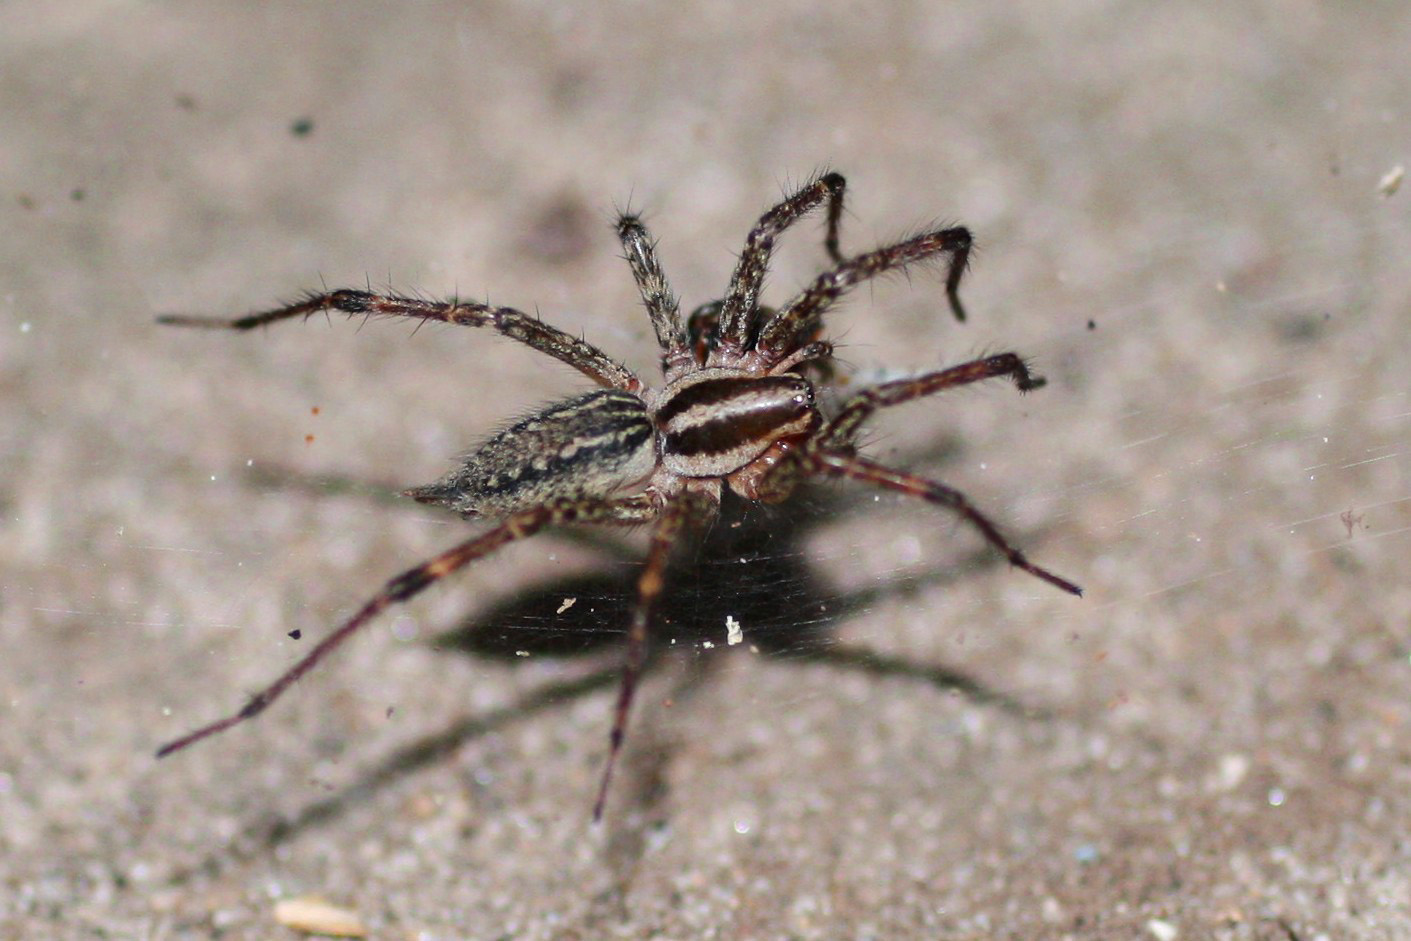 How to Identify Grass Spiders